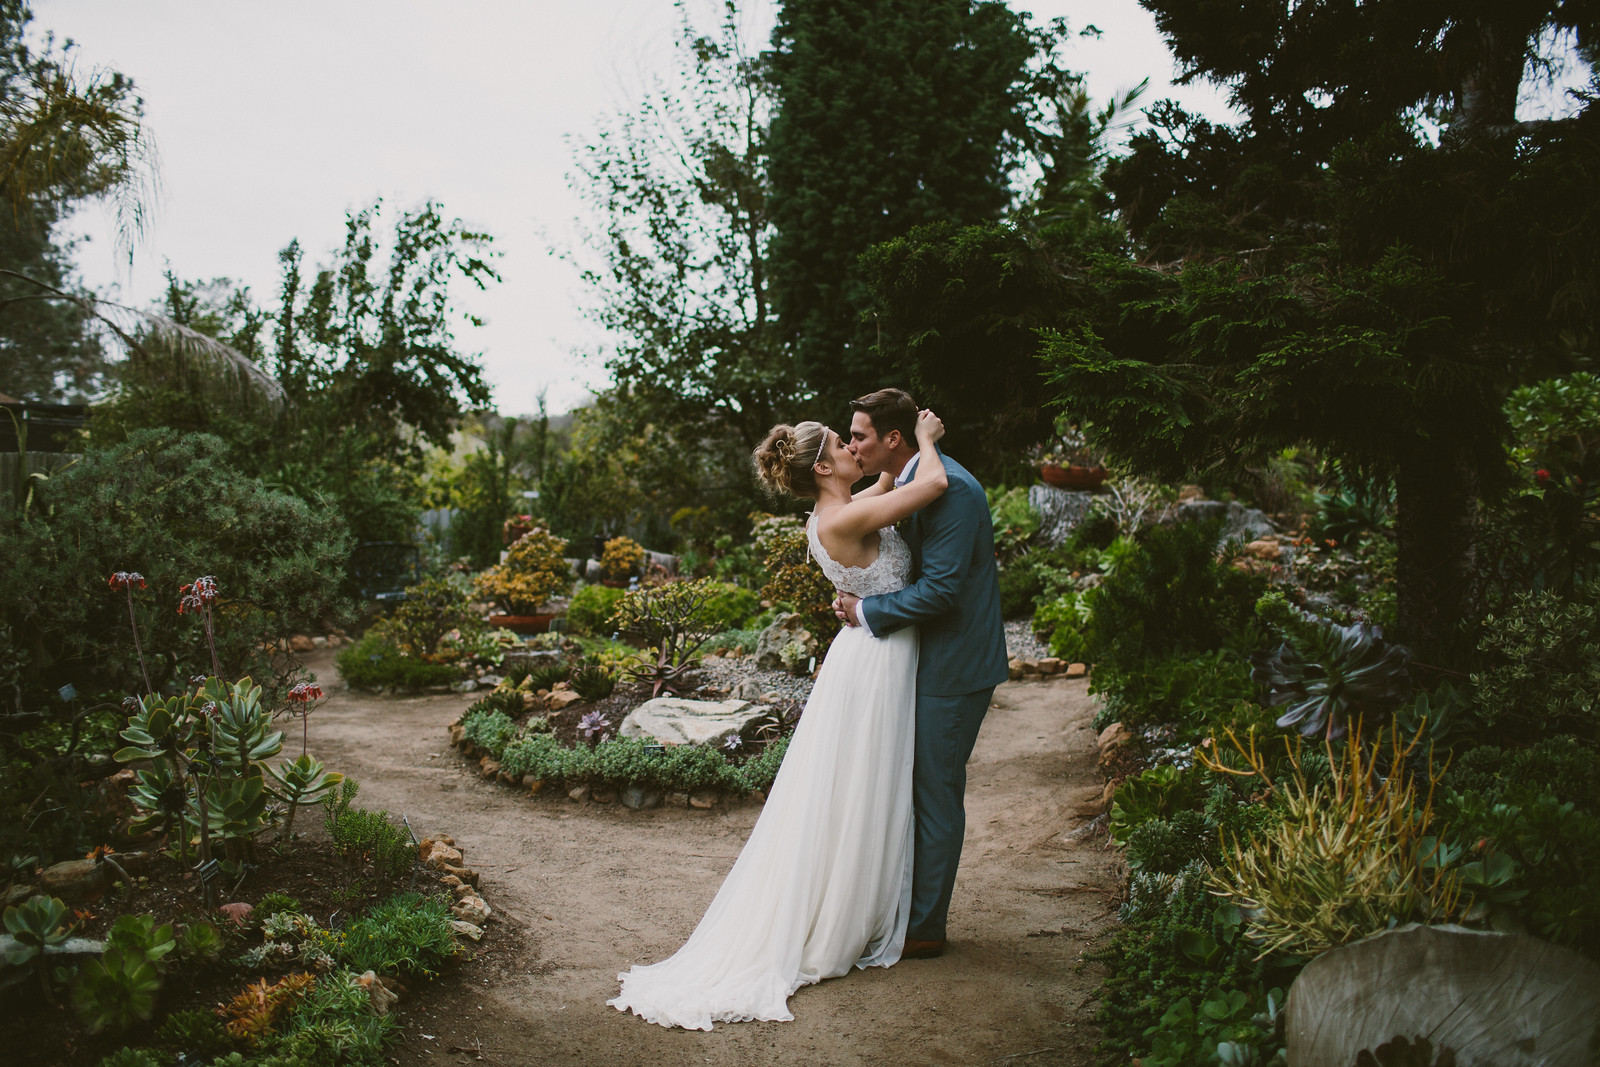 sandiego-botanic-garden-wedding-35.jpg